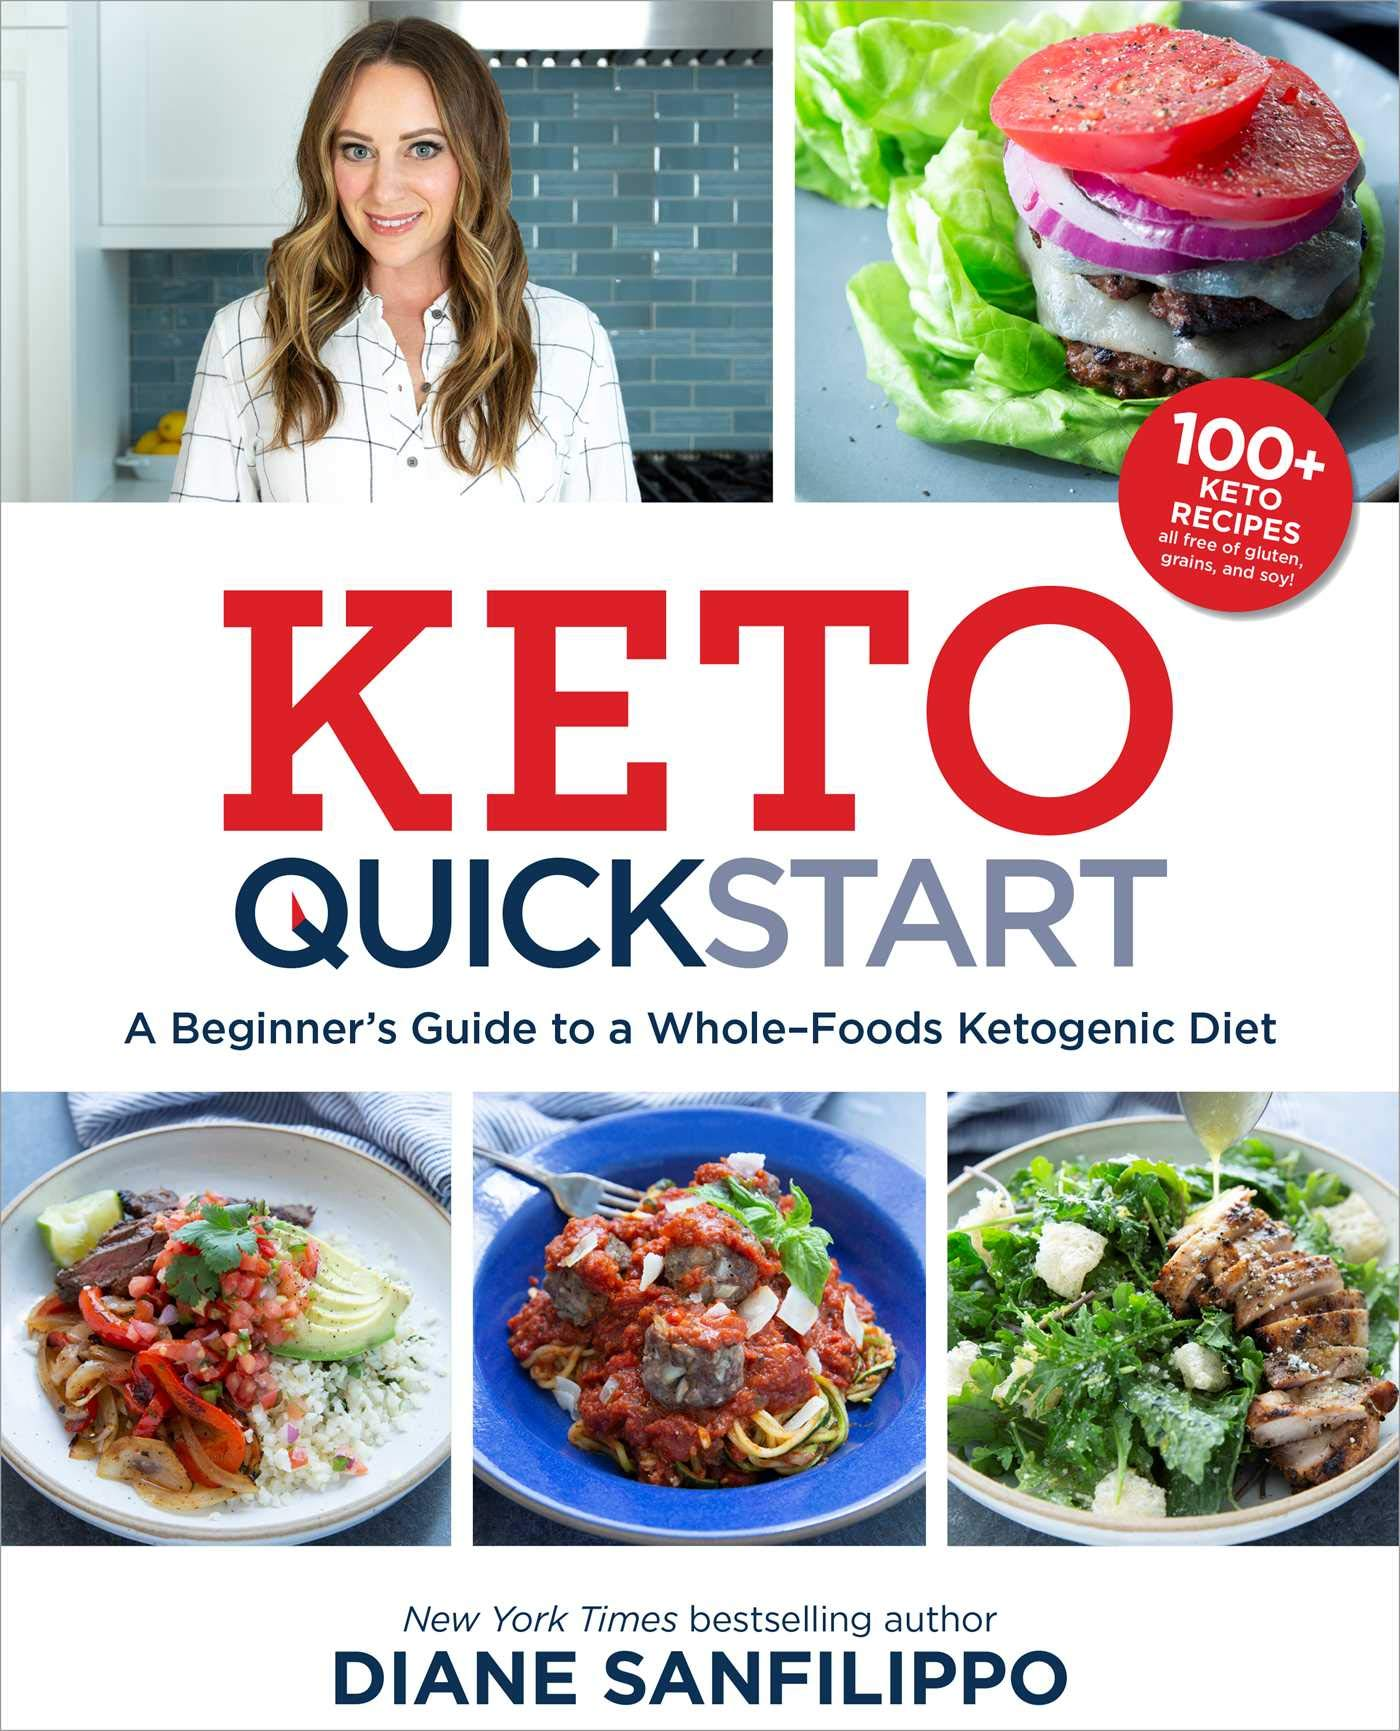 Keto Quick Start Beginners Whole Foods product image